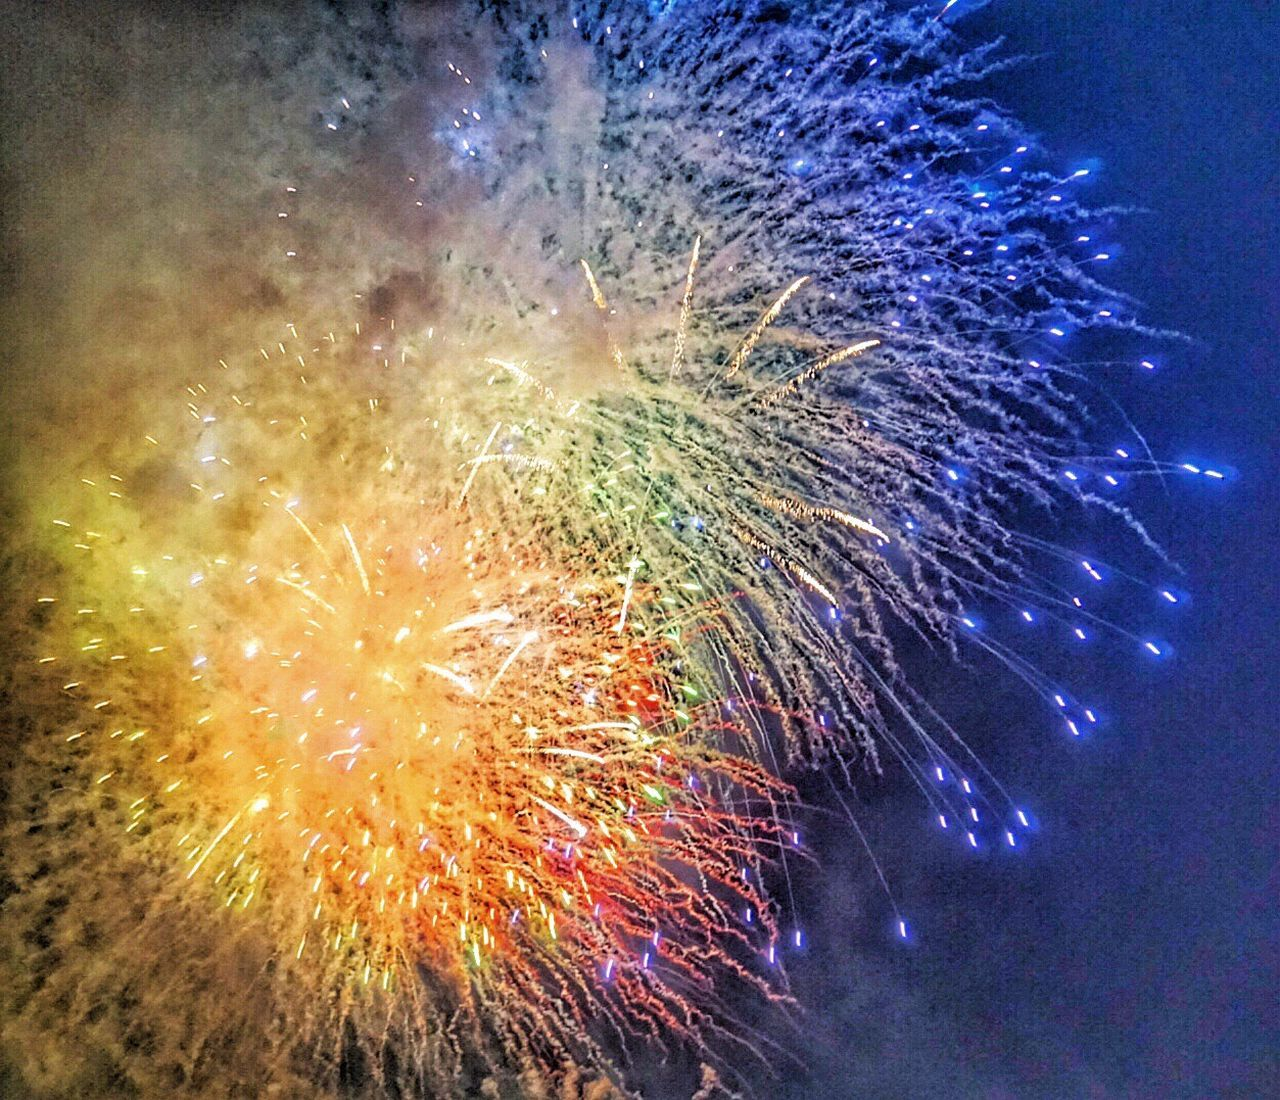 firework display, celebration, exploding, night, firework - man made object, long exposure, arts culture and entertainment, low angle view, event, multi colored, blurred motion, illuminated, firework, motion, sky, awe, no people, outdoors